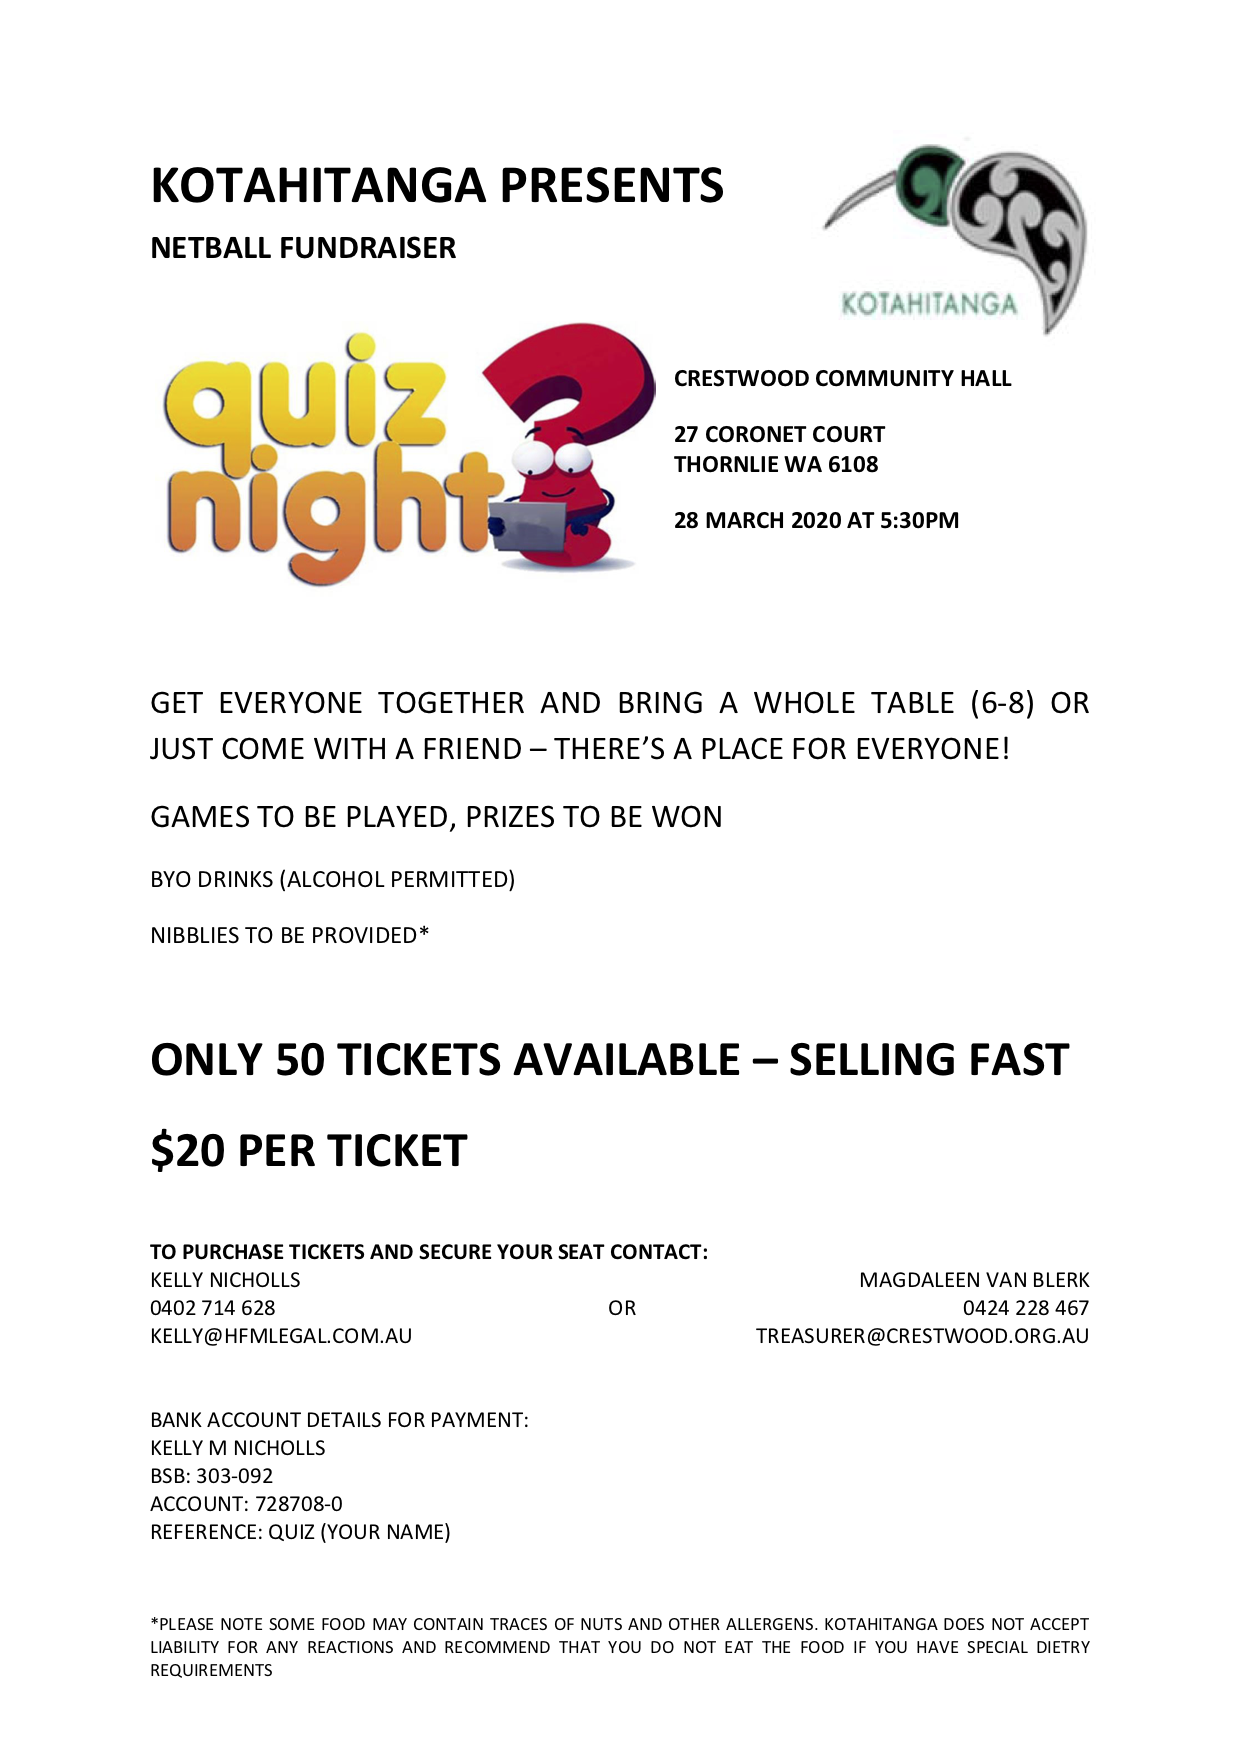 KOTAHITANGA-Quiz-Night-Flyer